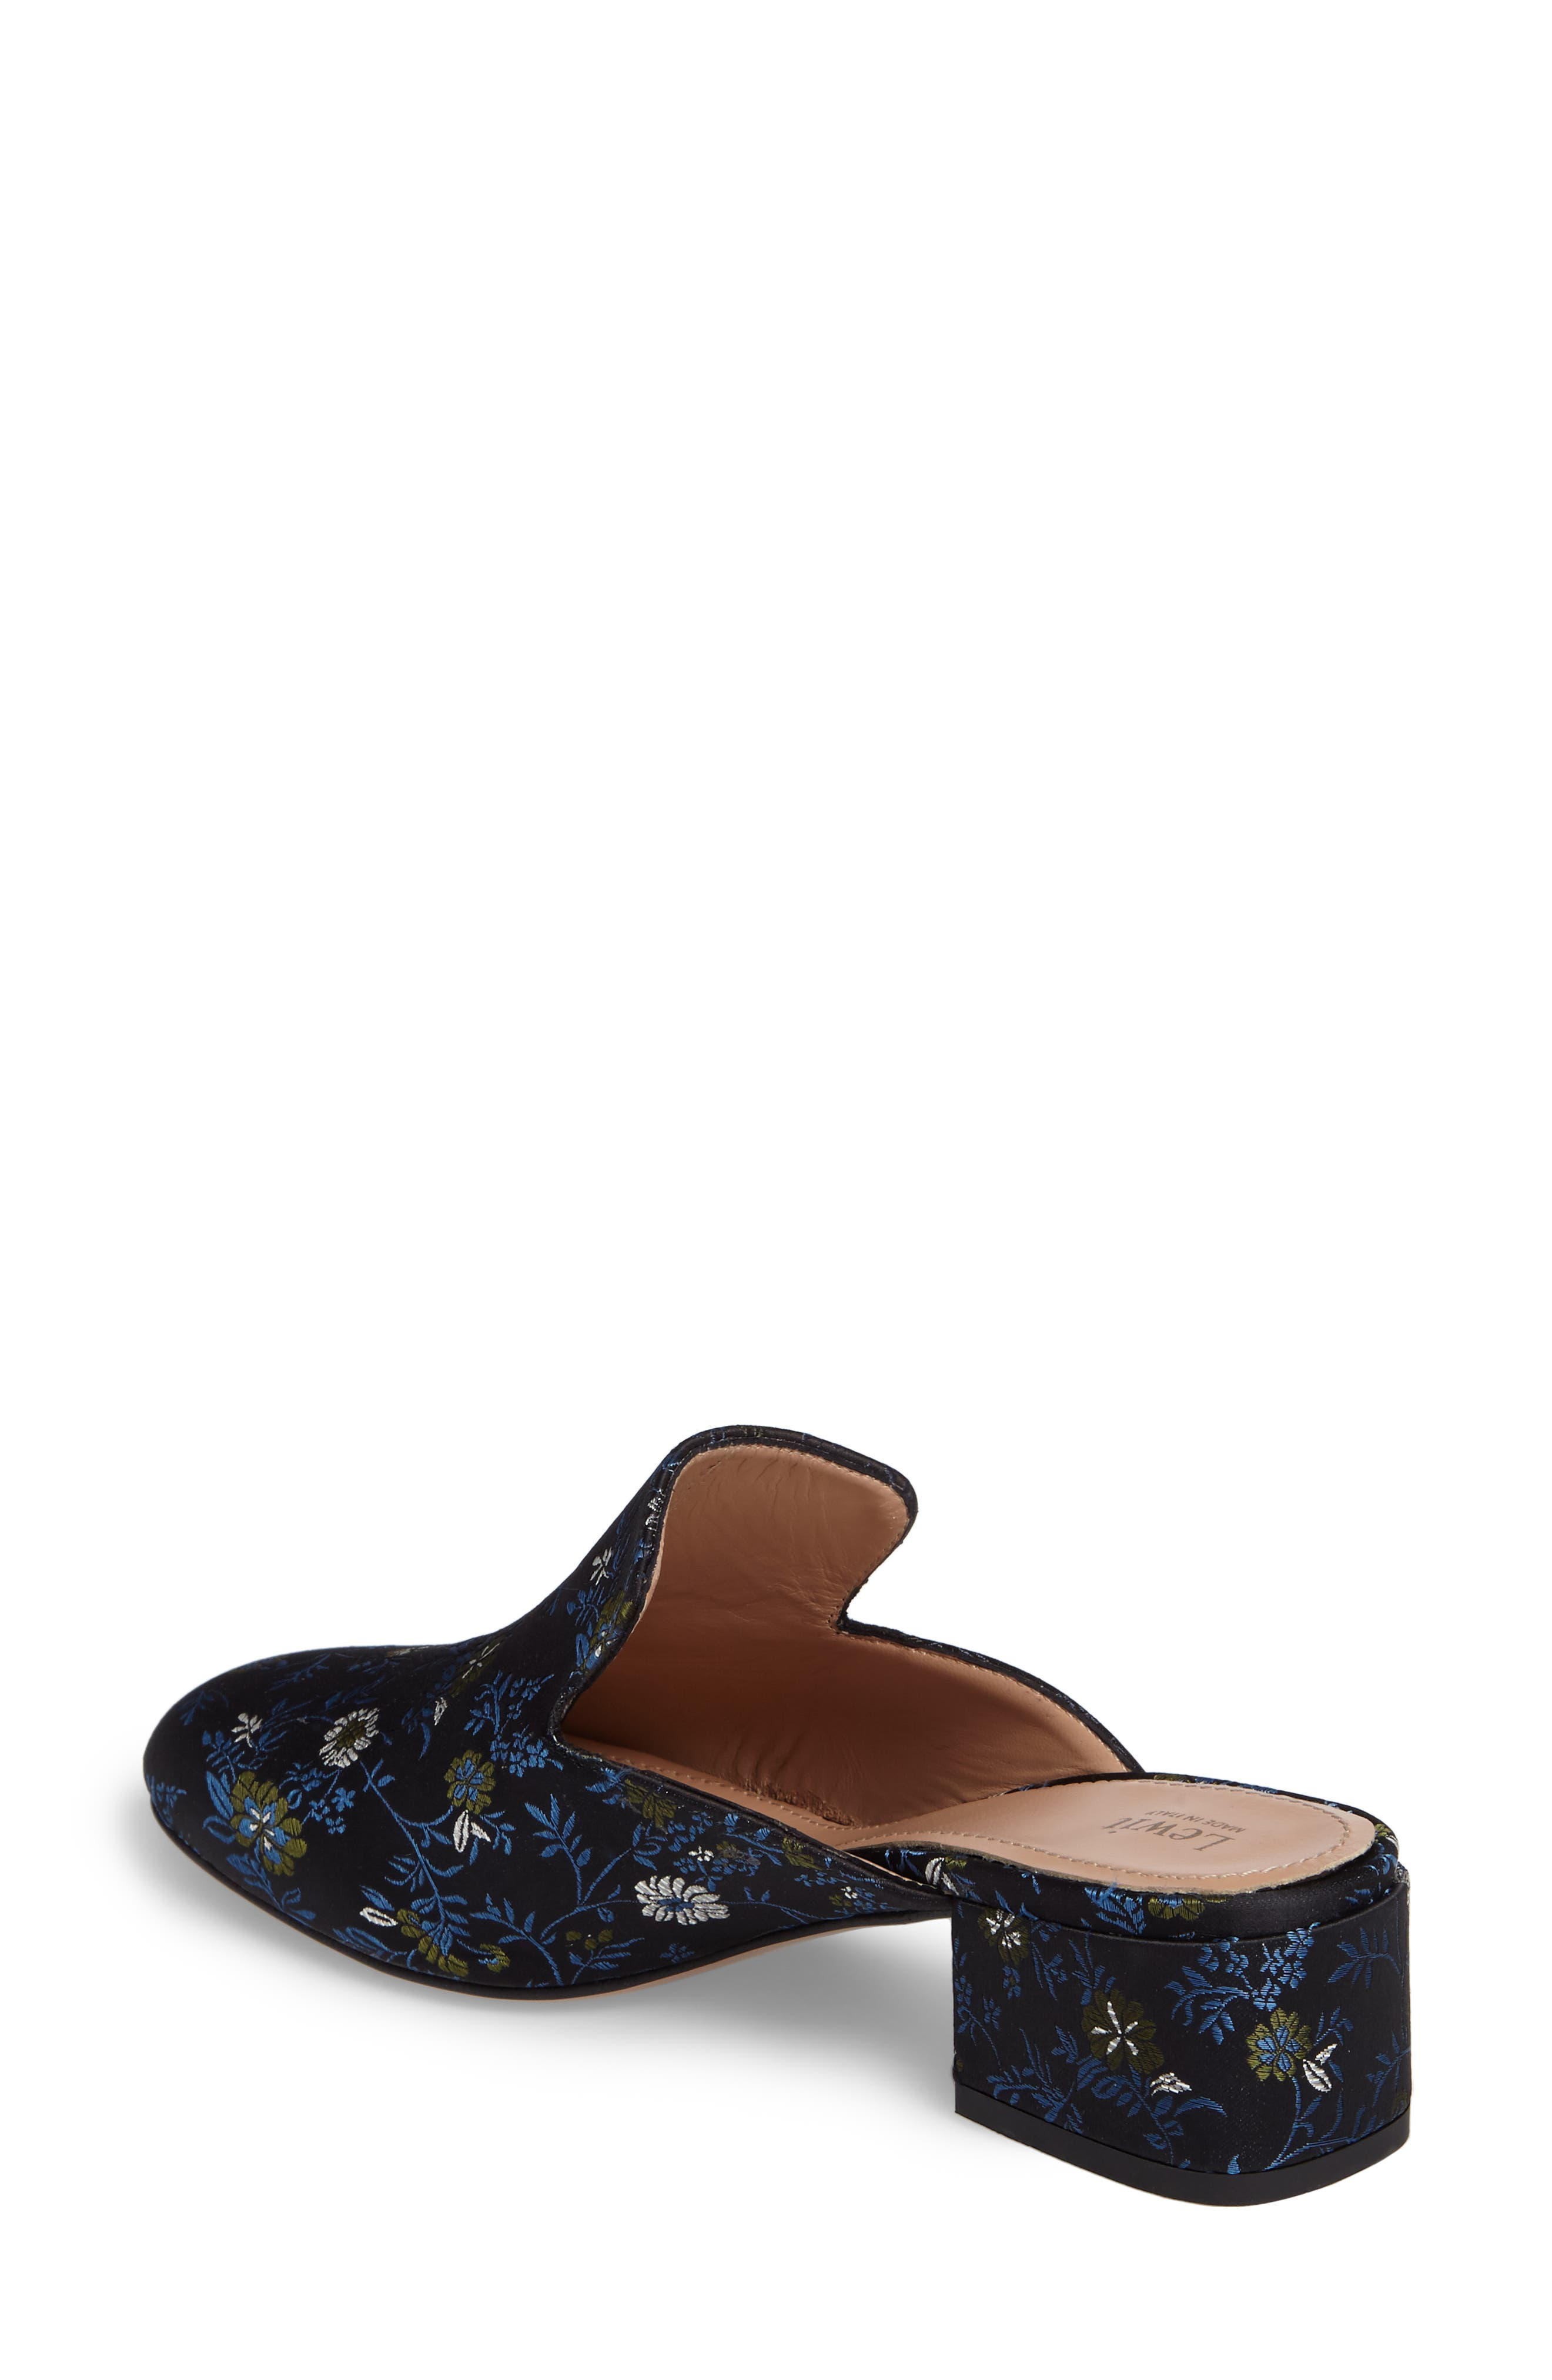 Bianca Embroidered Loafer Mule,                             Alternate thumbnail 2, color,                             Black/ Blue Floral Fabric